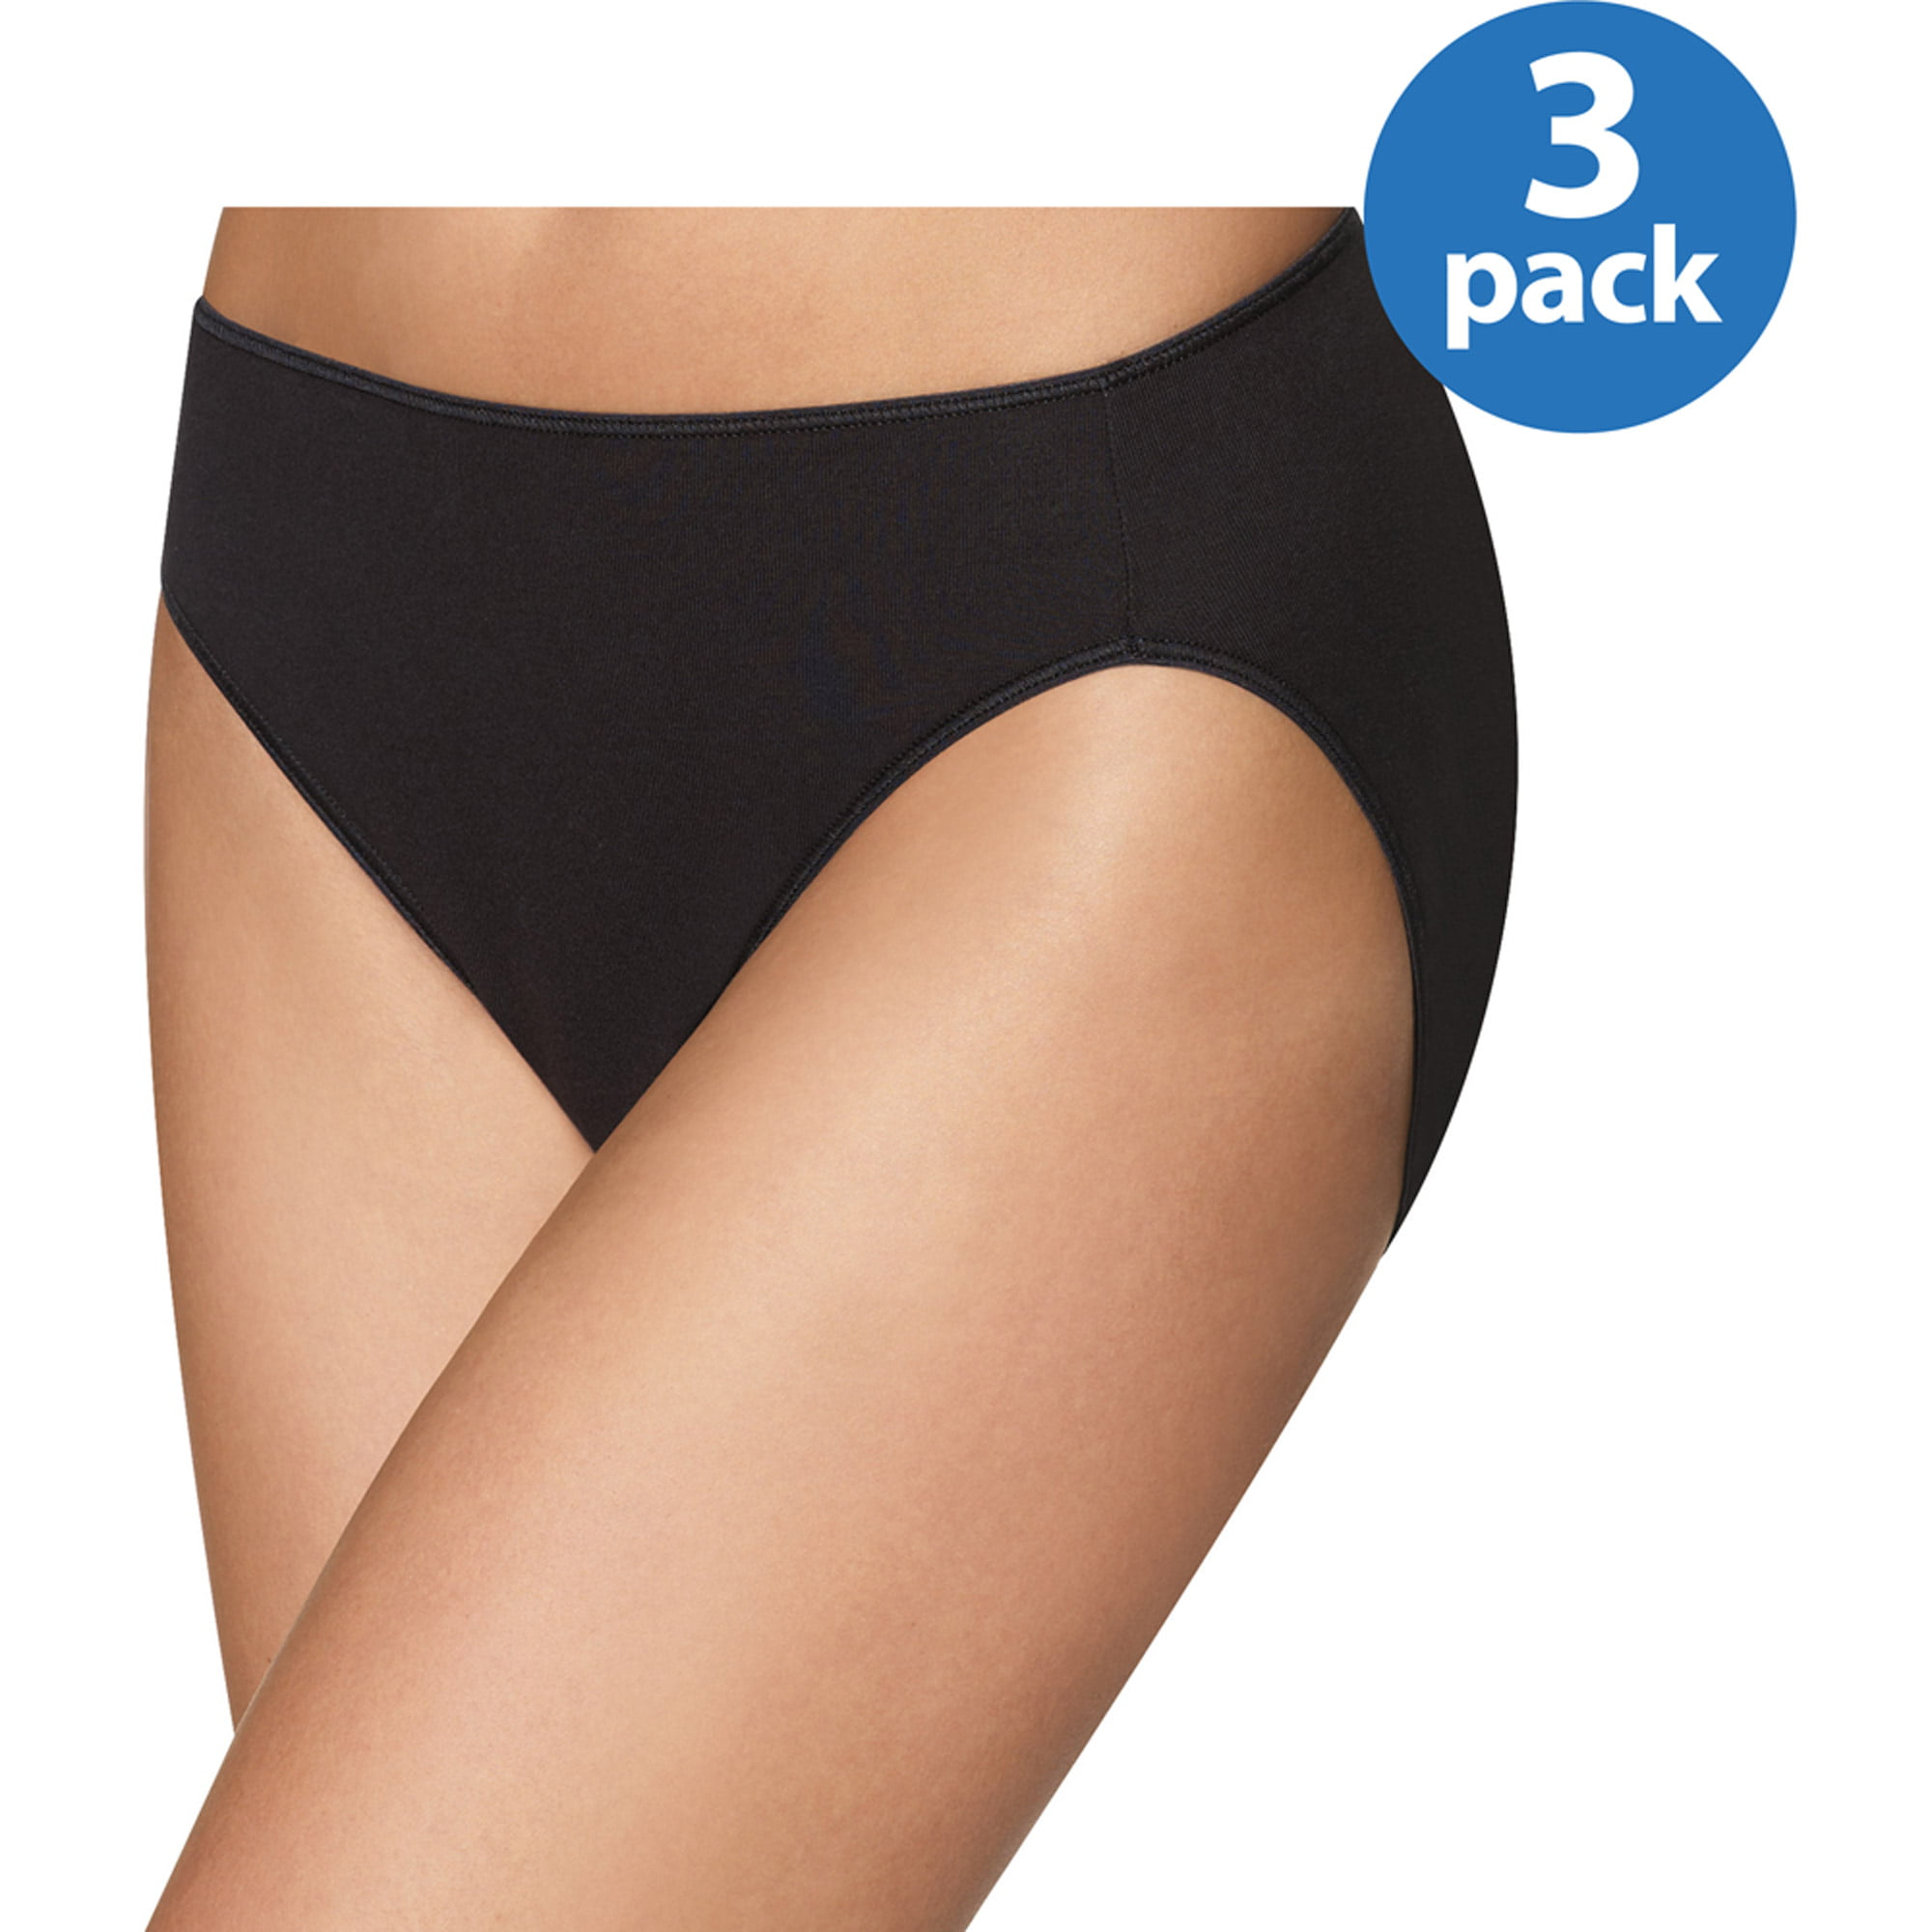 e957c3407d5 Hanes - Women s Smooth Illusions Hi-Cut Panties - Pack of 3 - Walmart.com